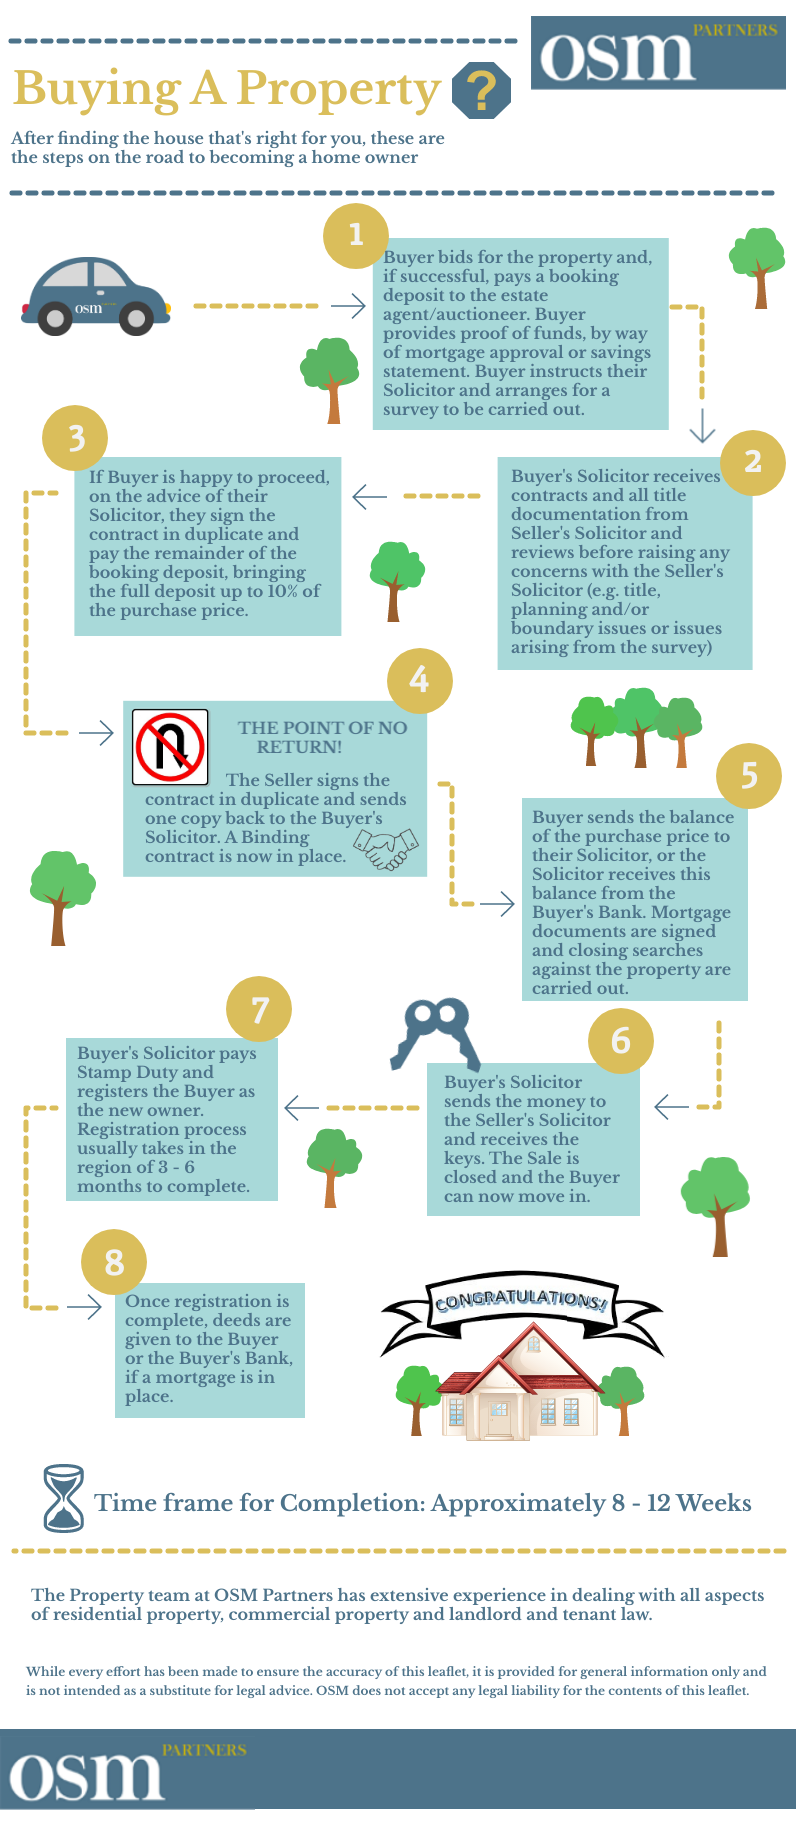 The Steps to Buying a Property